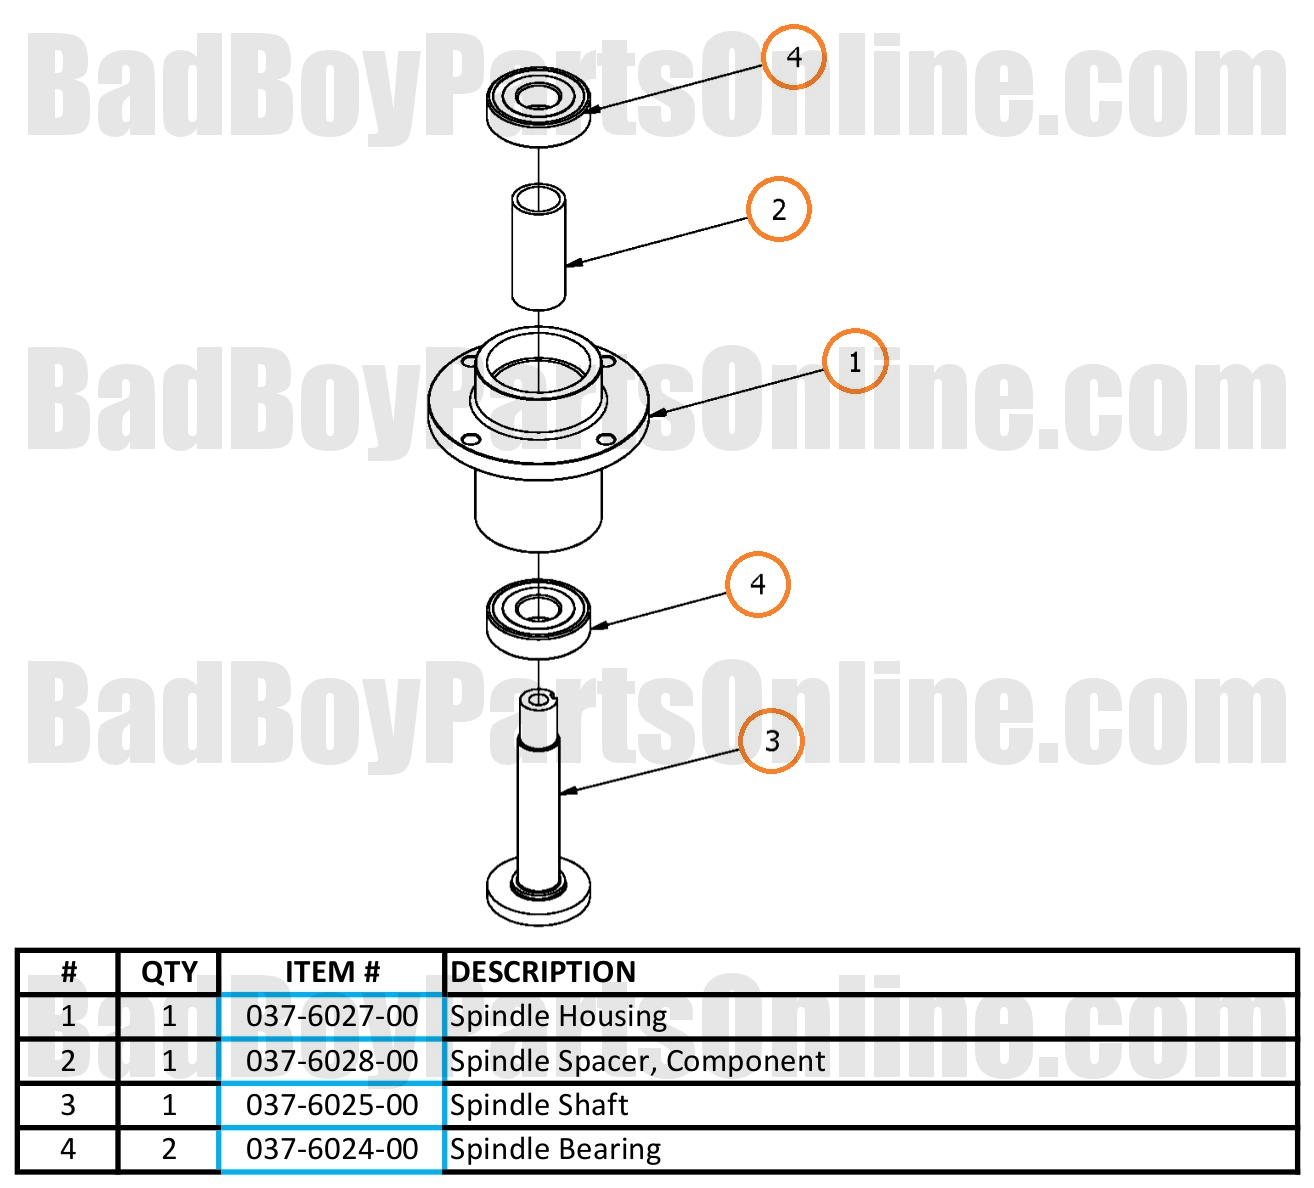 Bad Boy Mower Parts | Wiring Diagram Database Bad Boy Sel Wiring Diagram on lawn boy wiring diagram, bad boy horn diagram, bad boy controller diagram, bad boy accessories, bad boy parts diagram,